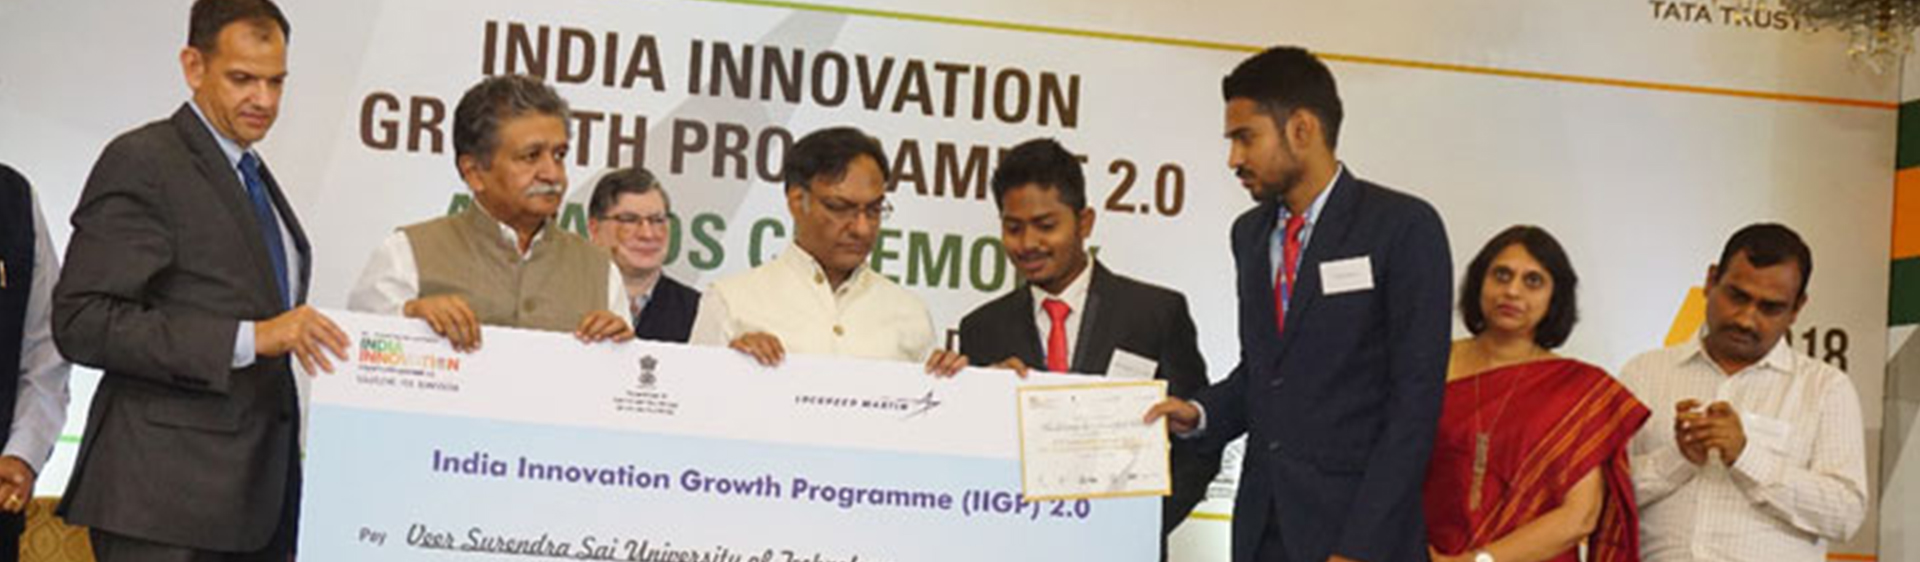 winners of University Challenge, India Innovation Growth Programme 2.0, by DST, Government of India,  2nd August 2018 in New Delhi